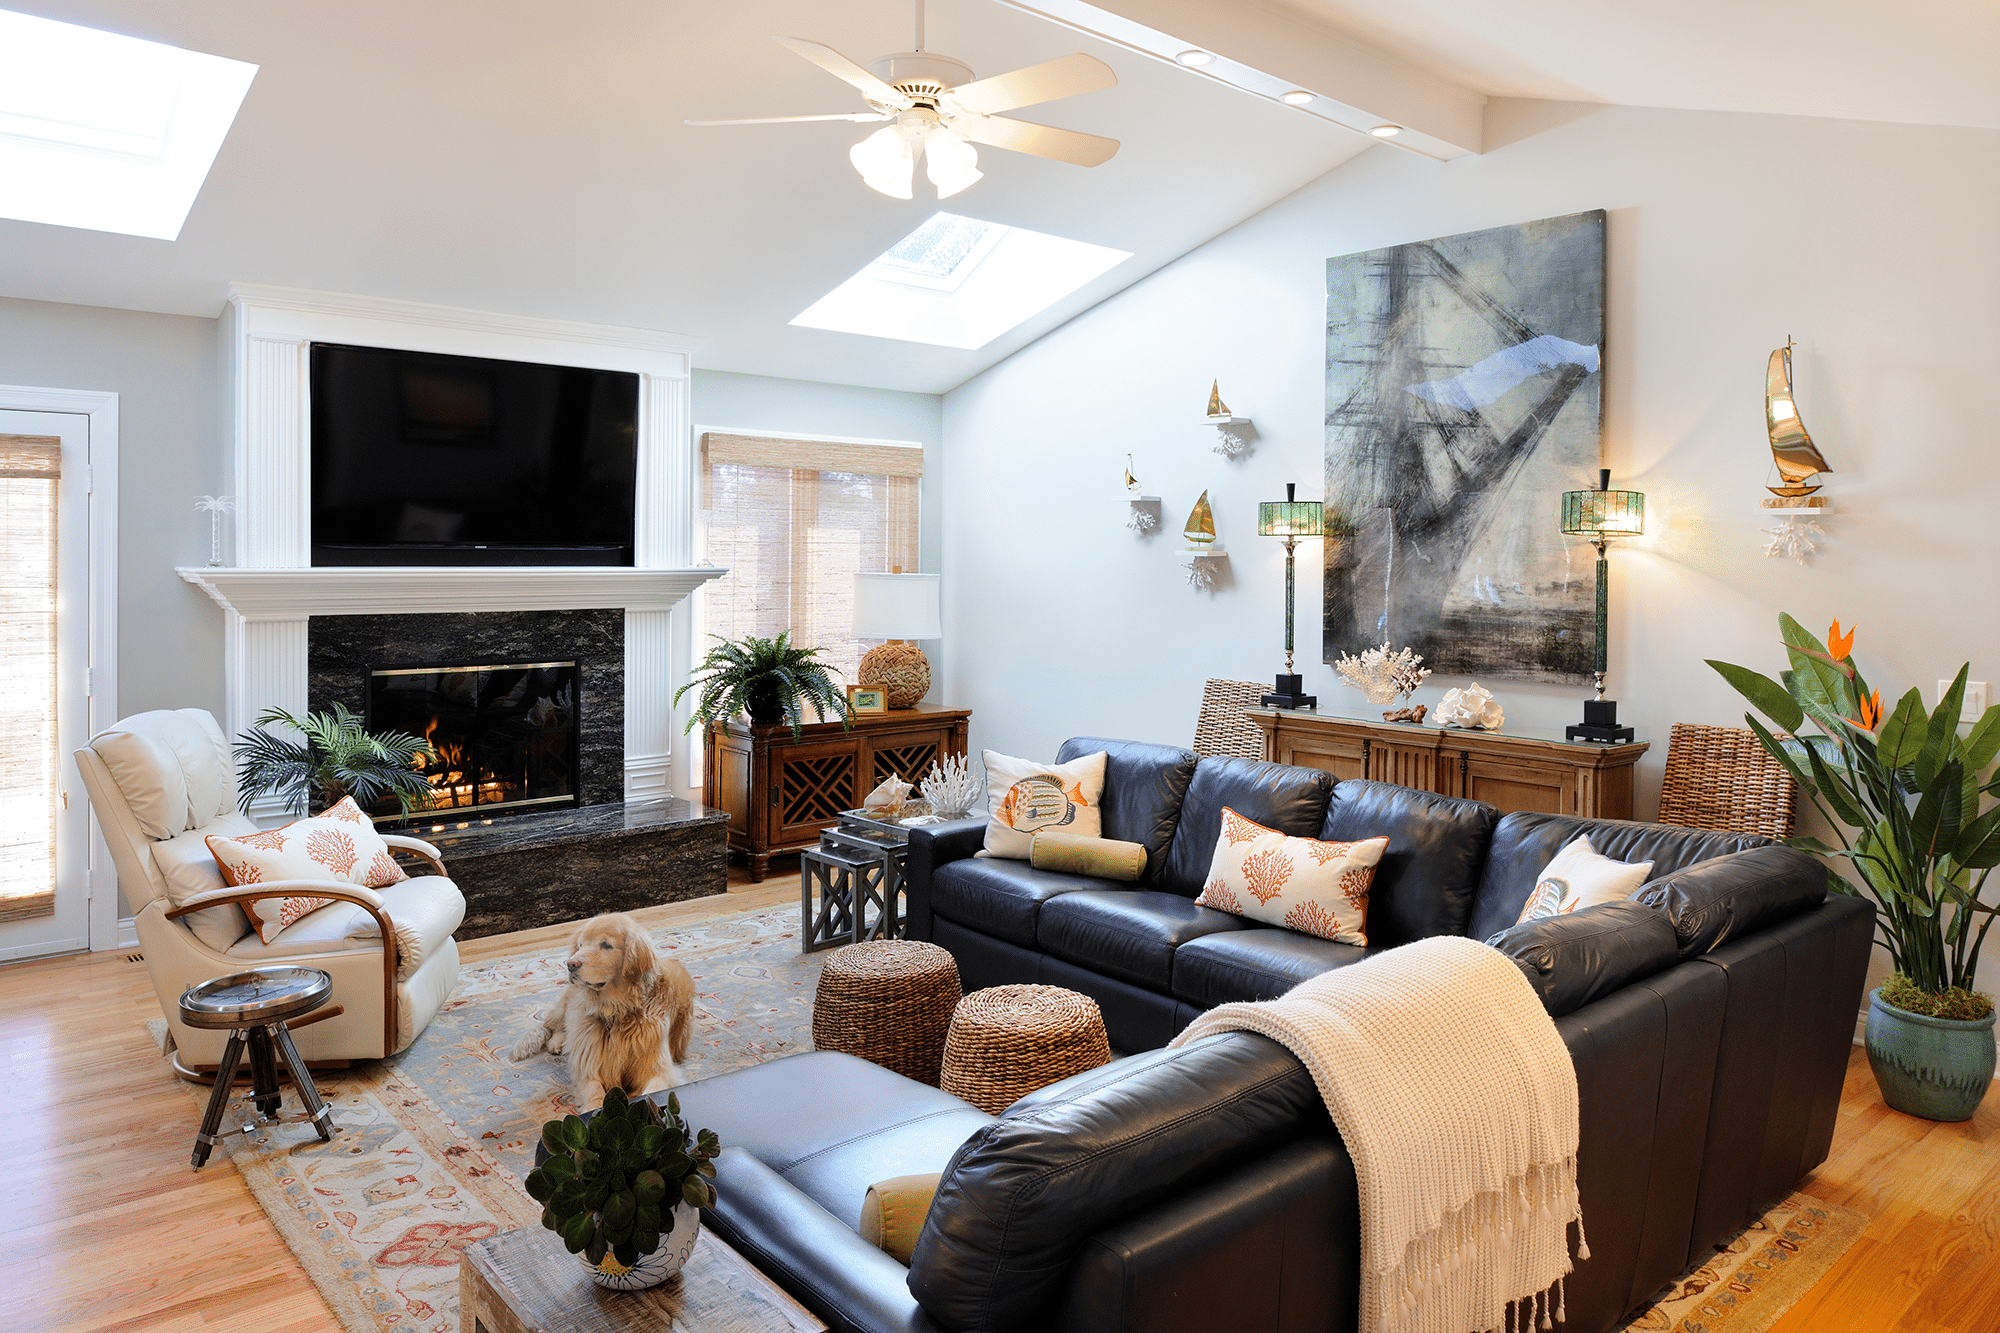 Black leather sectional sofa facing lit electric fireplace